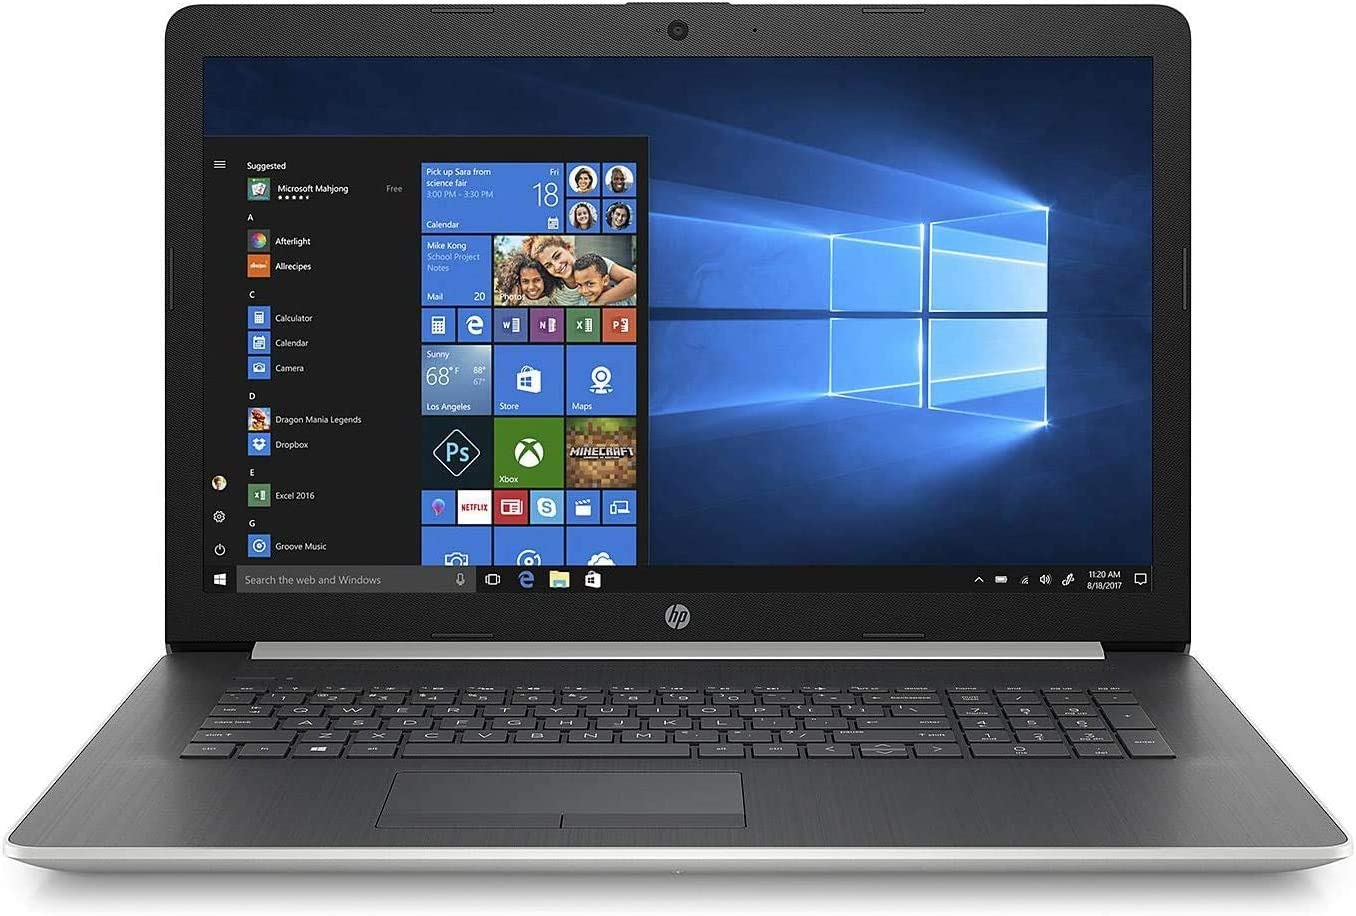 2020 Newest HP 17 High-Performance PC laptop : 17.3 HD+ Anti-Glare Display, AMD Ryzen 3-3200 Processor, 8GB Ram, 128GB SSD, AMD Radeon Vega 3, Wifi, Bluetooth, DVDRW, HDMI, TureVision HD Webcam, Win10